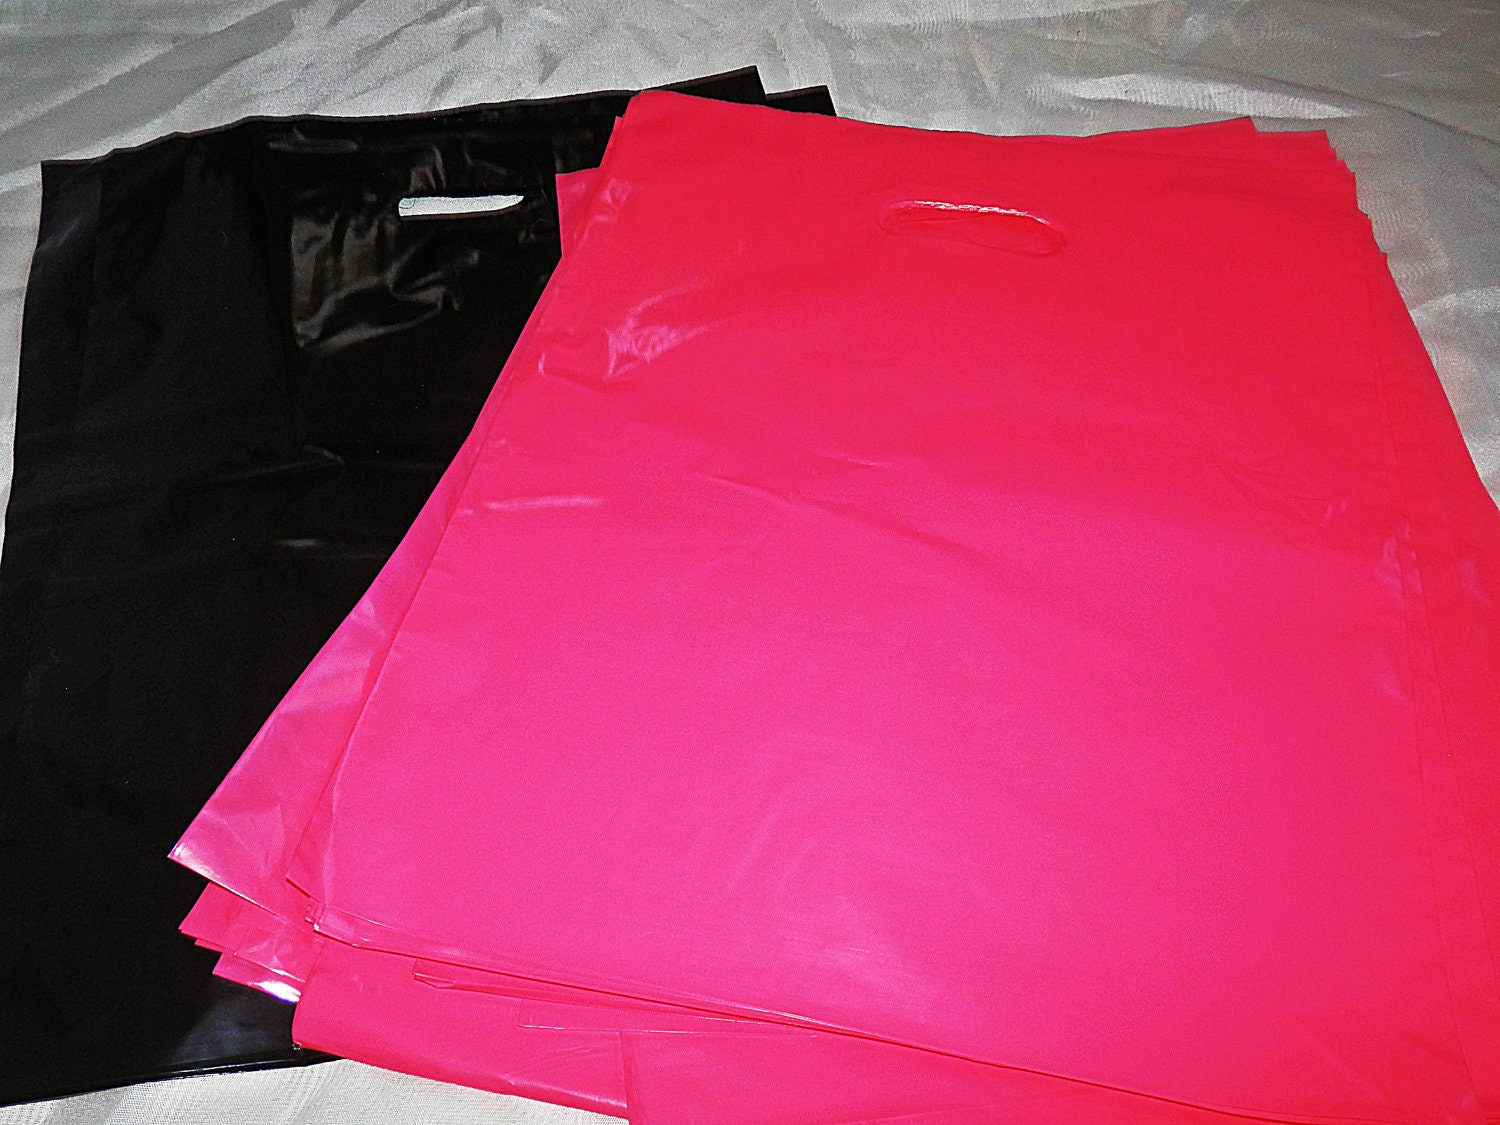 100 12x15 glossy black and pink plastic merchandise bags for 12x15 calculator